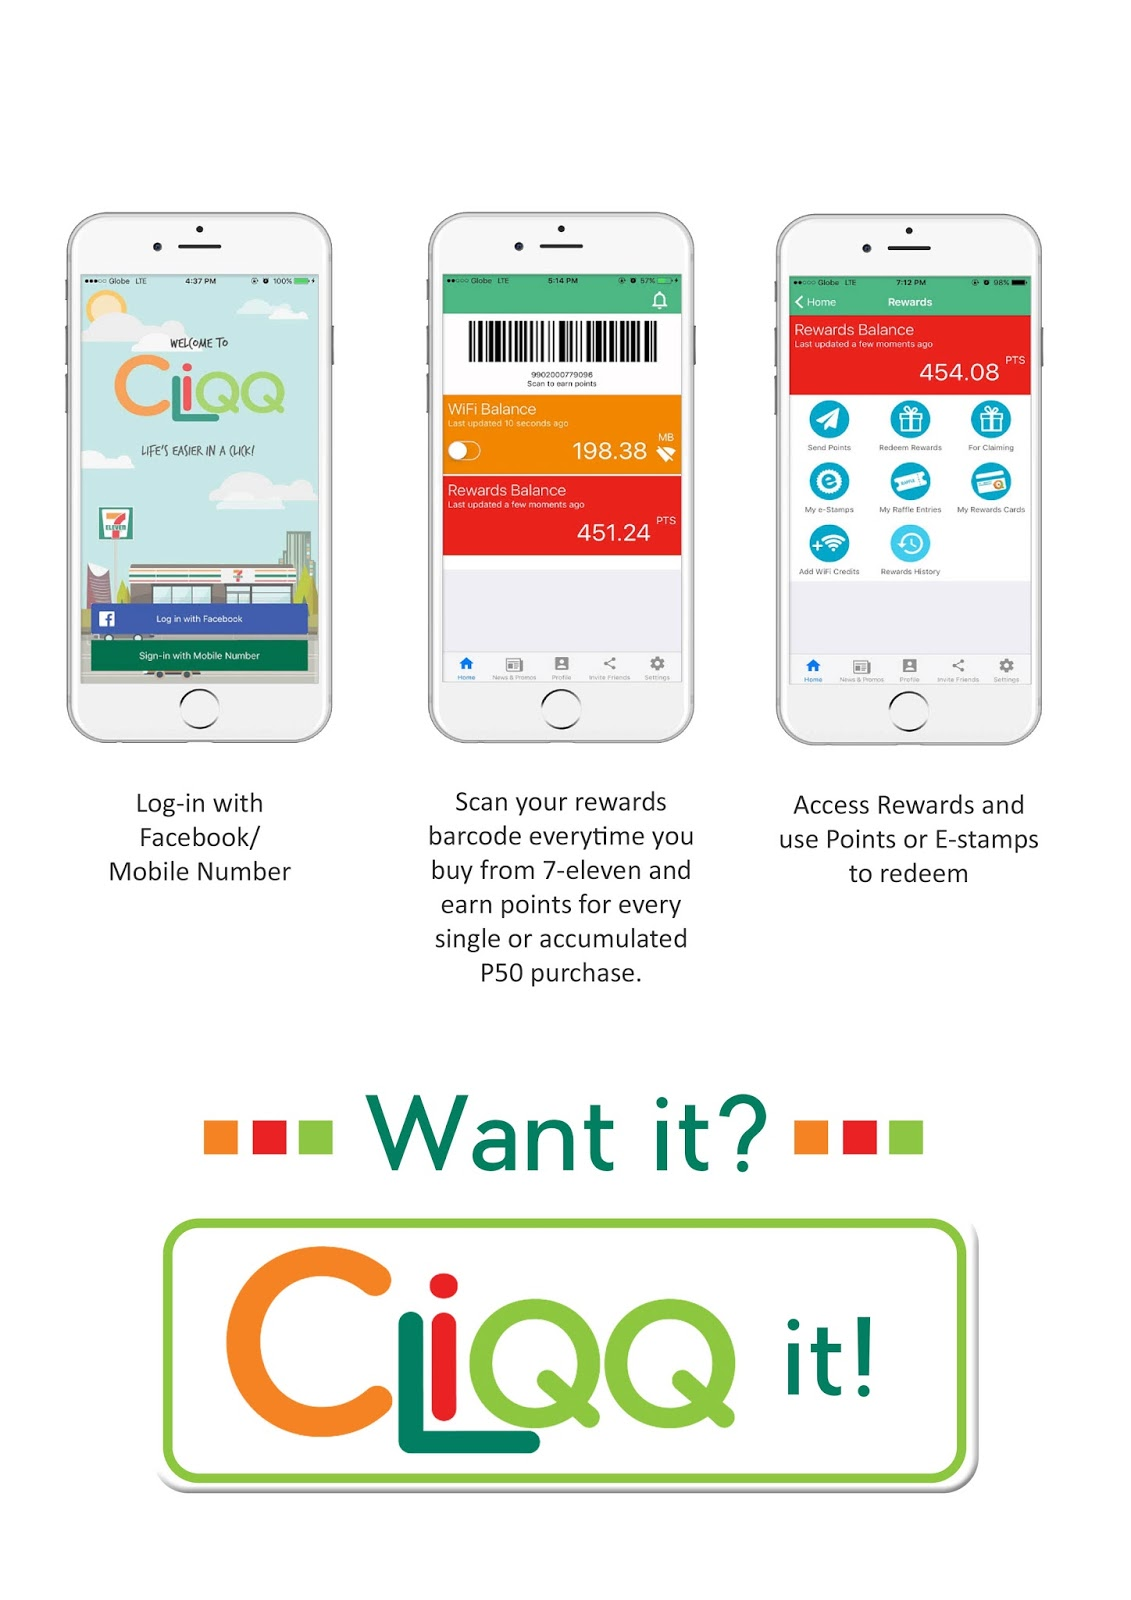 7-Eleven Rewards You With Every CLiQQ!